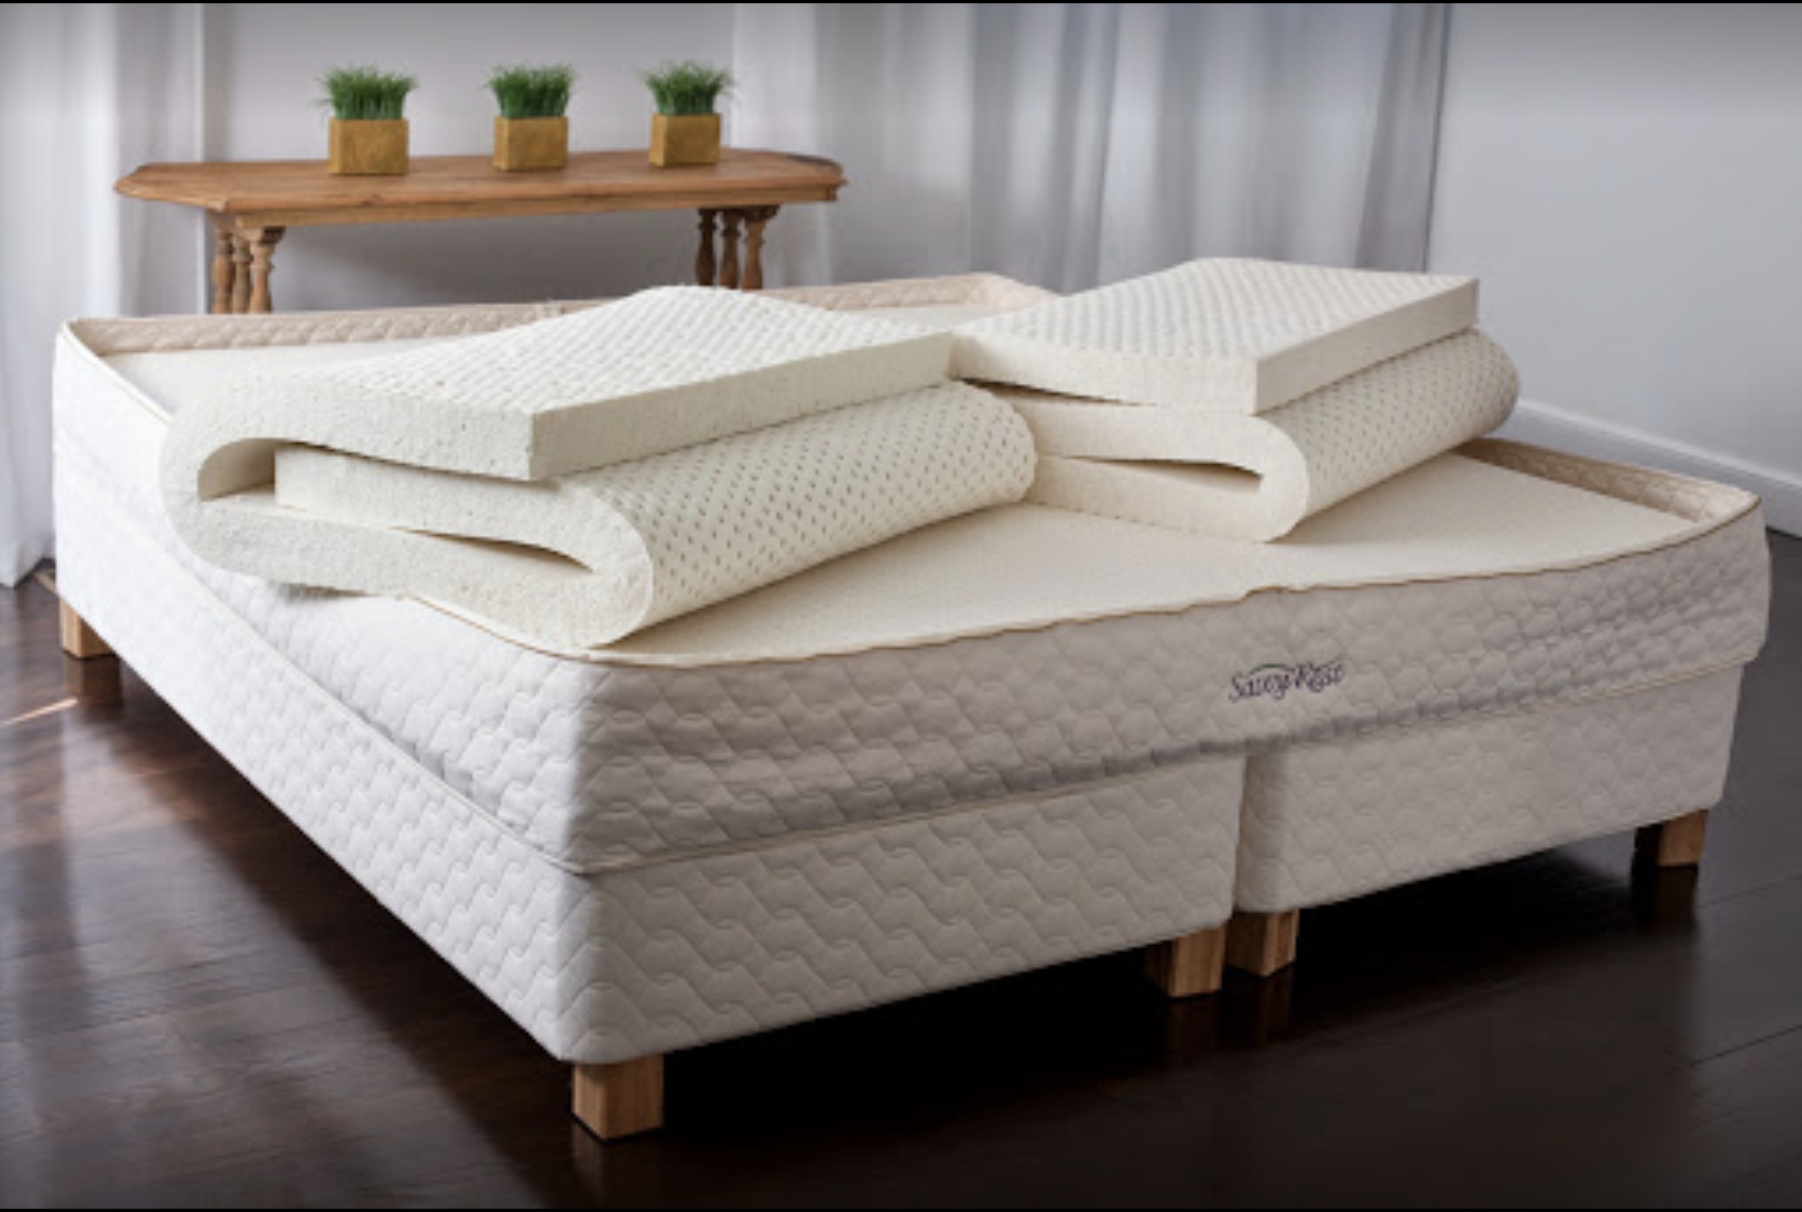 Savvy Rest Natural Bedroom – Natural Vita Talalay Latex Mattress Store In Berkeley California